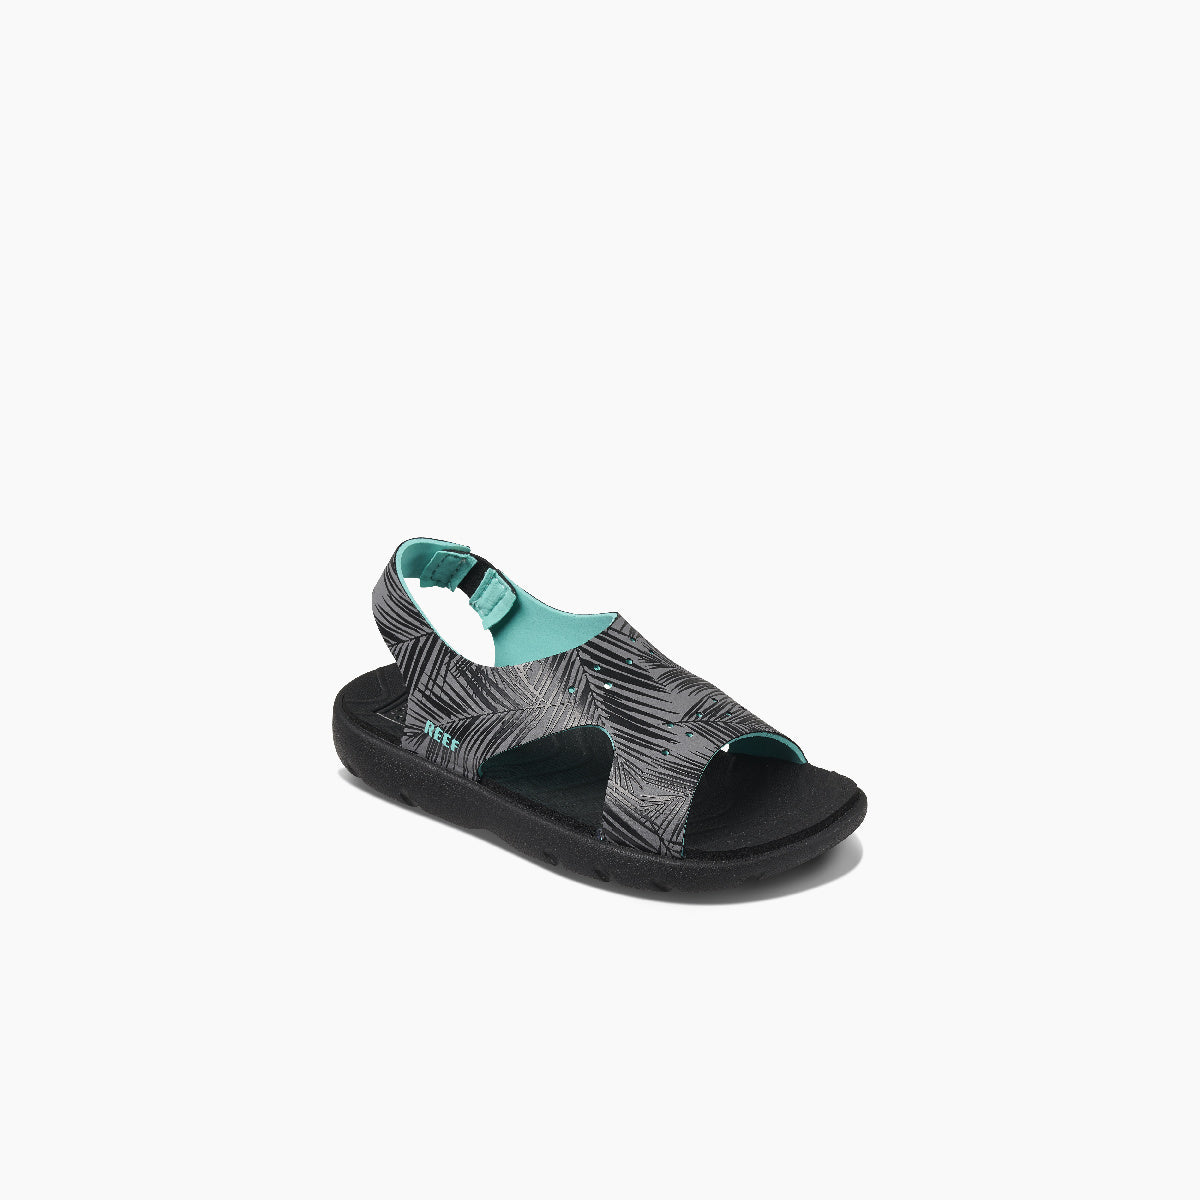 REEF LITTLE REEF BEACHY BLACK